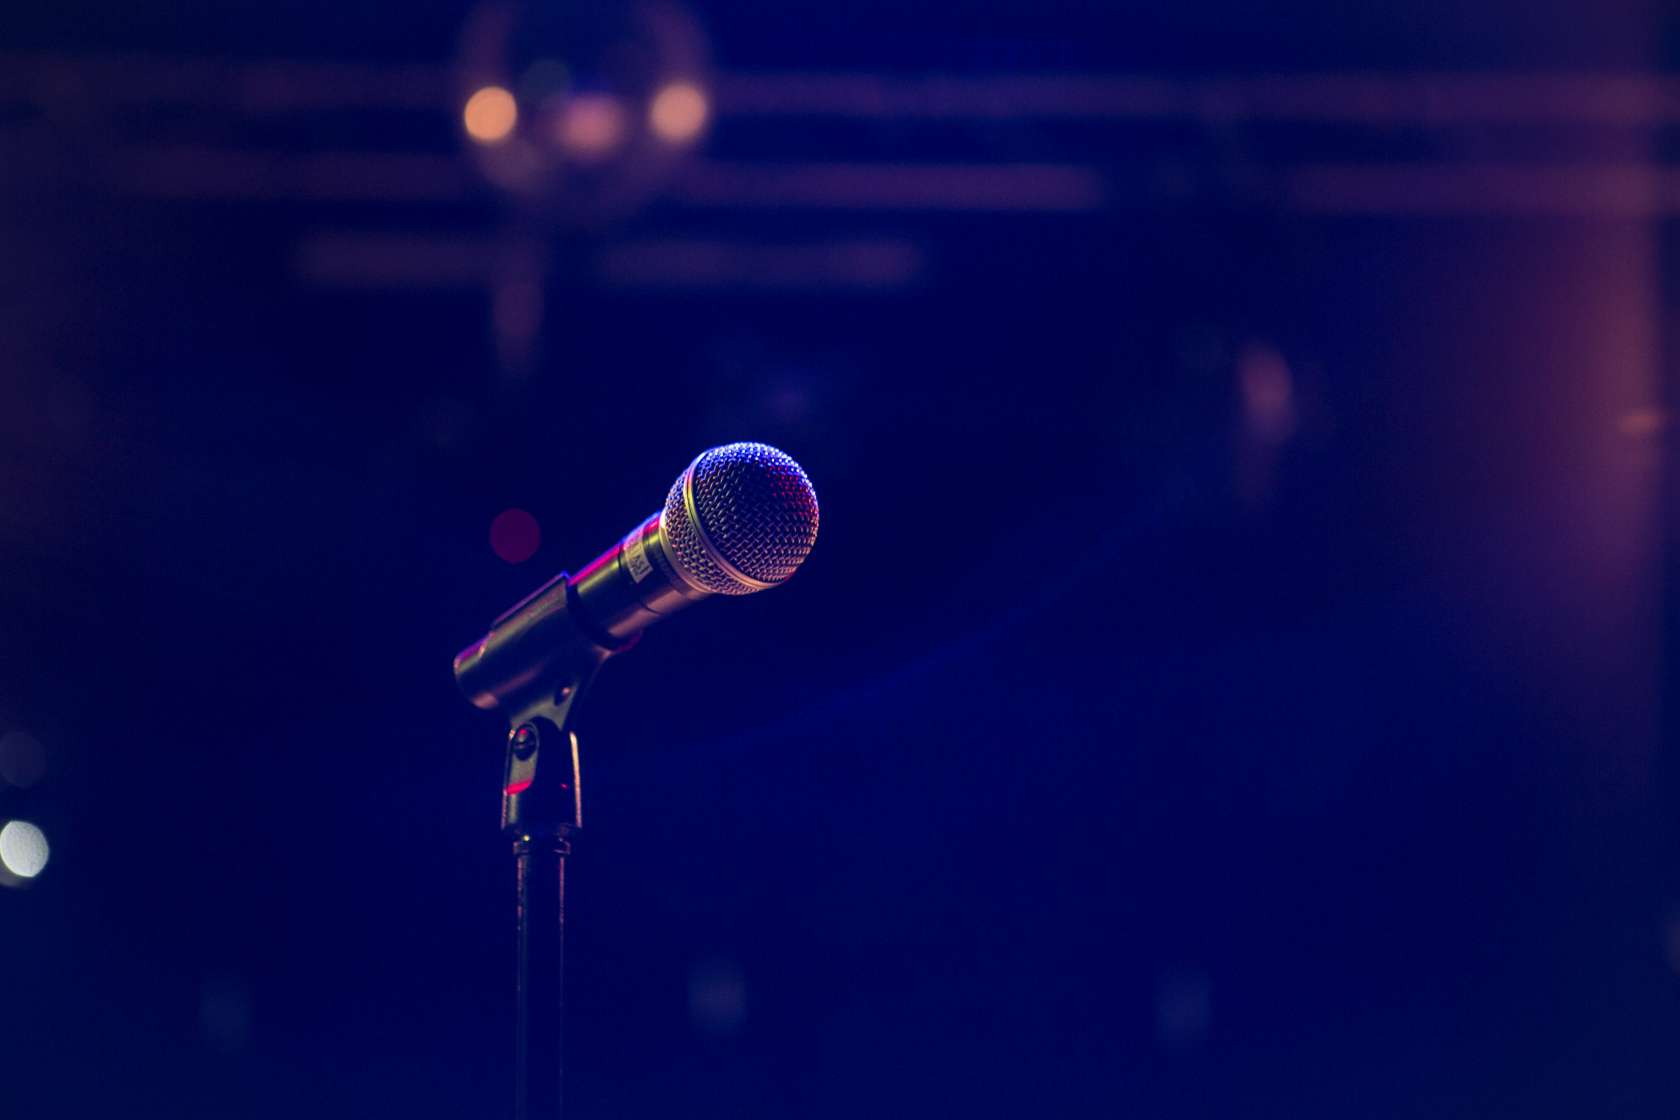 A microphone on a dimly lit stage